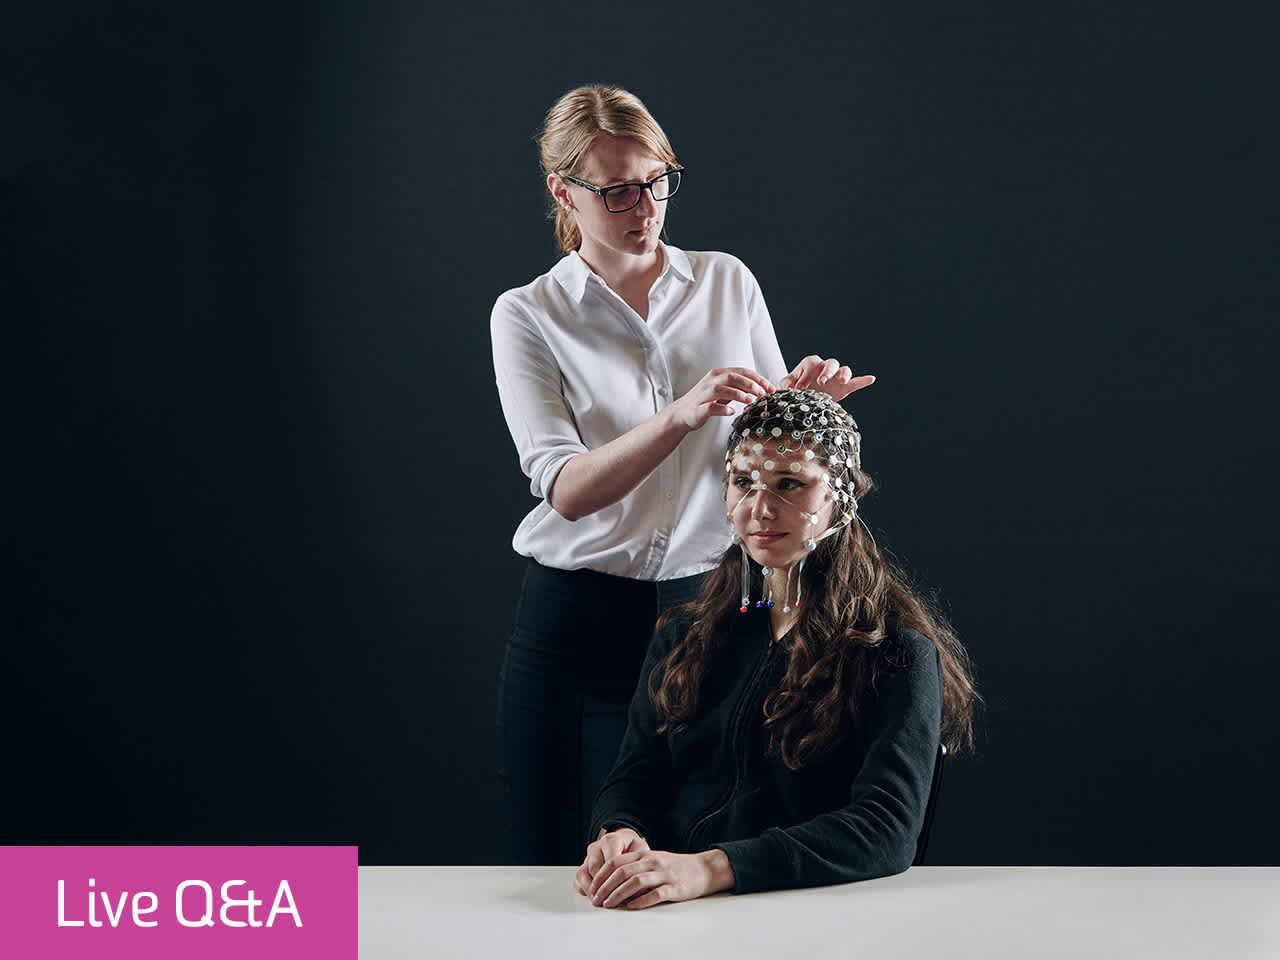 Psychologist attaching sensors to a patient's head